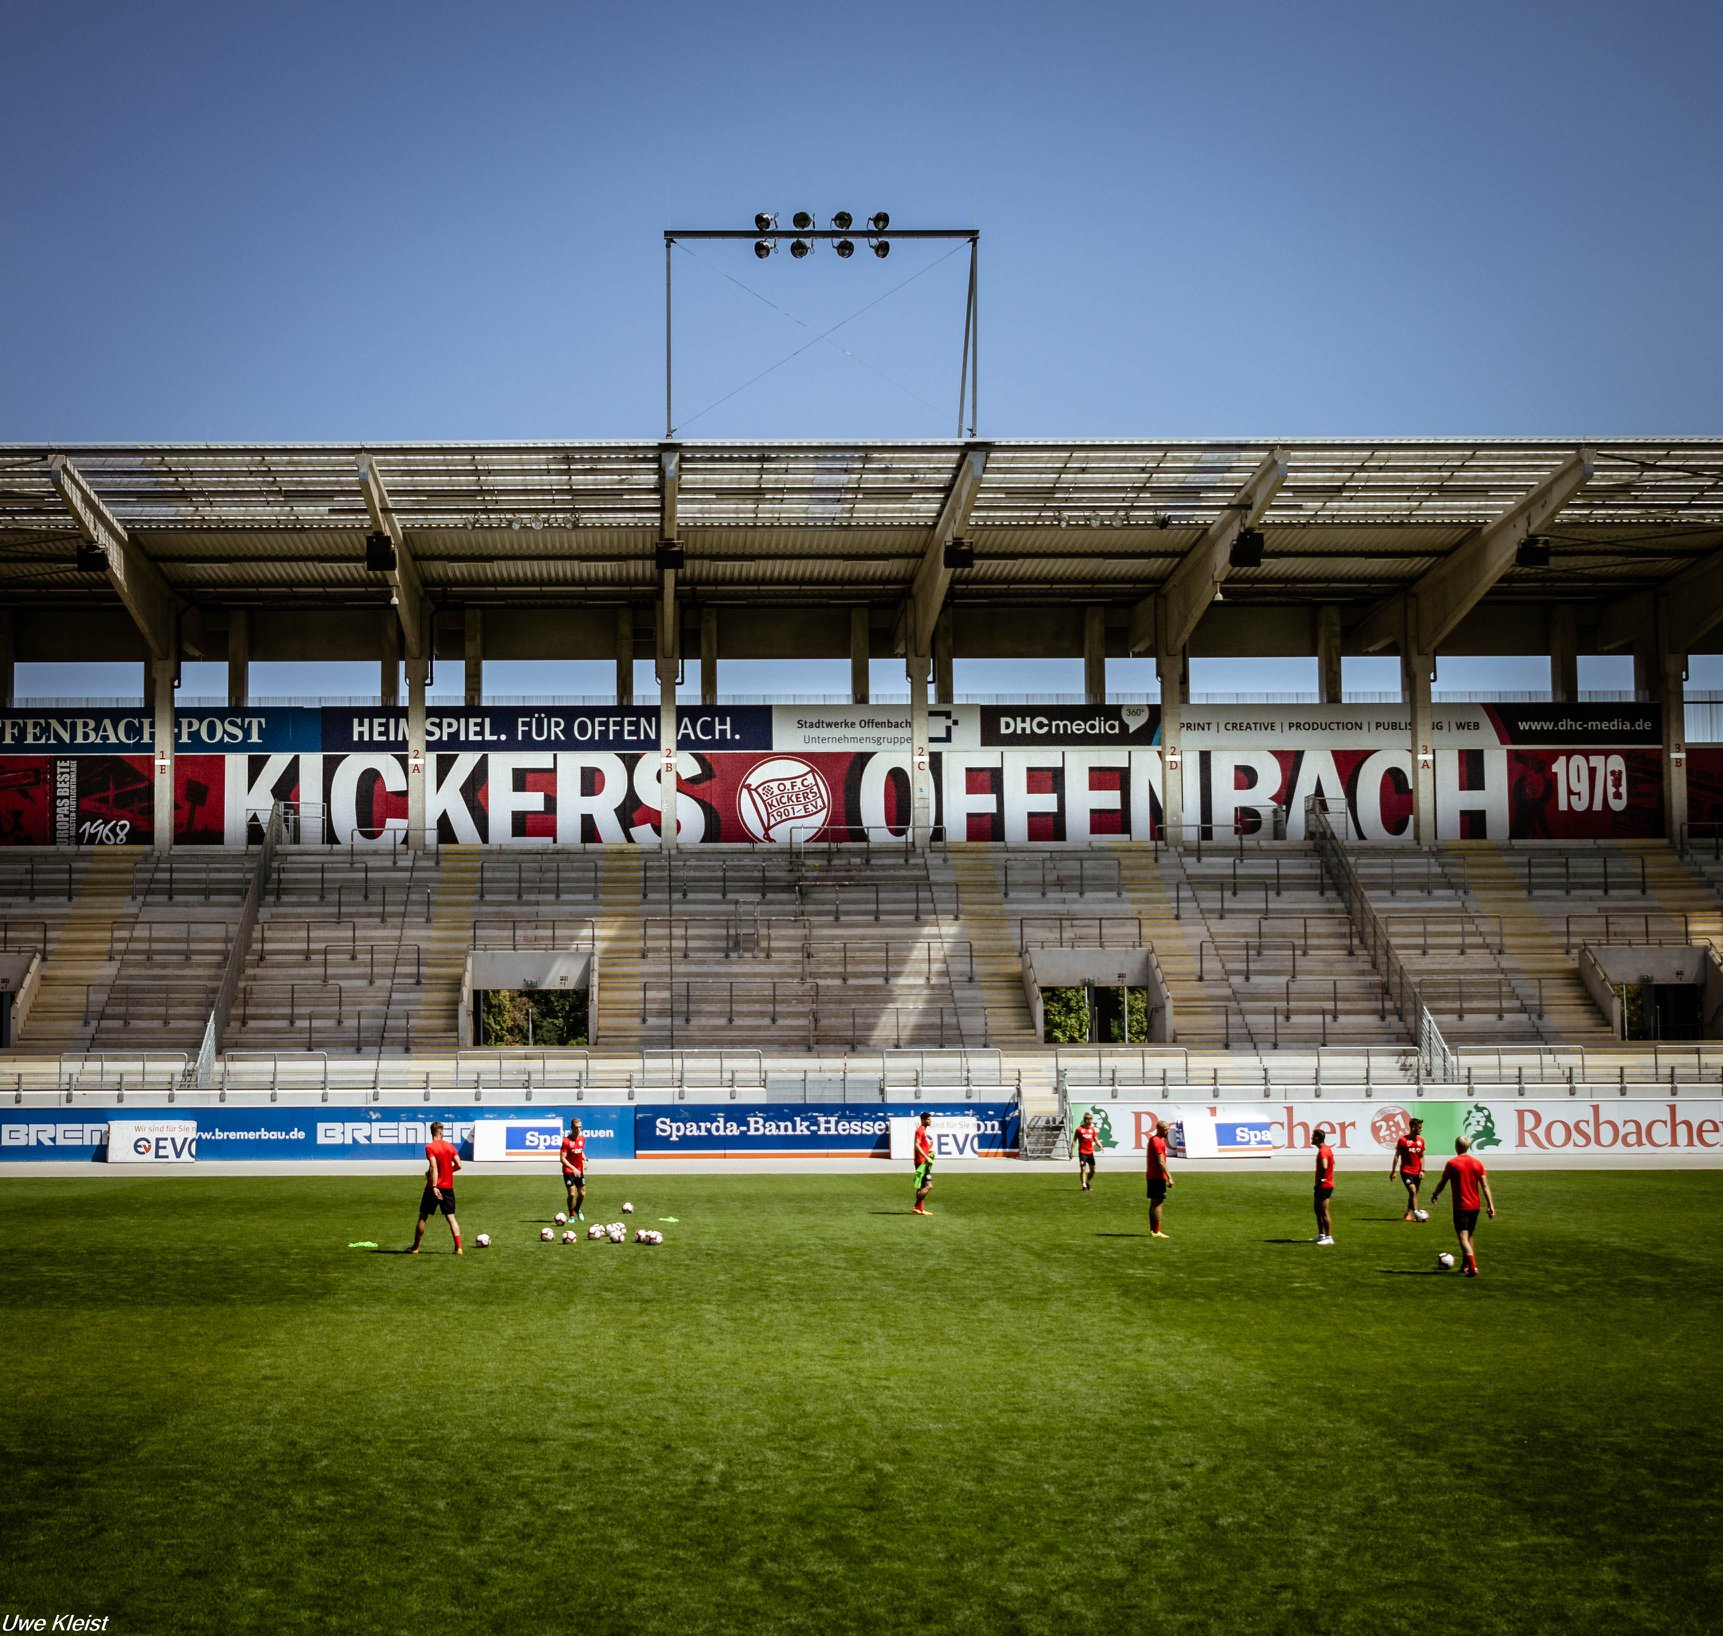 Kickers Offenbach cover image